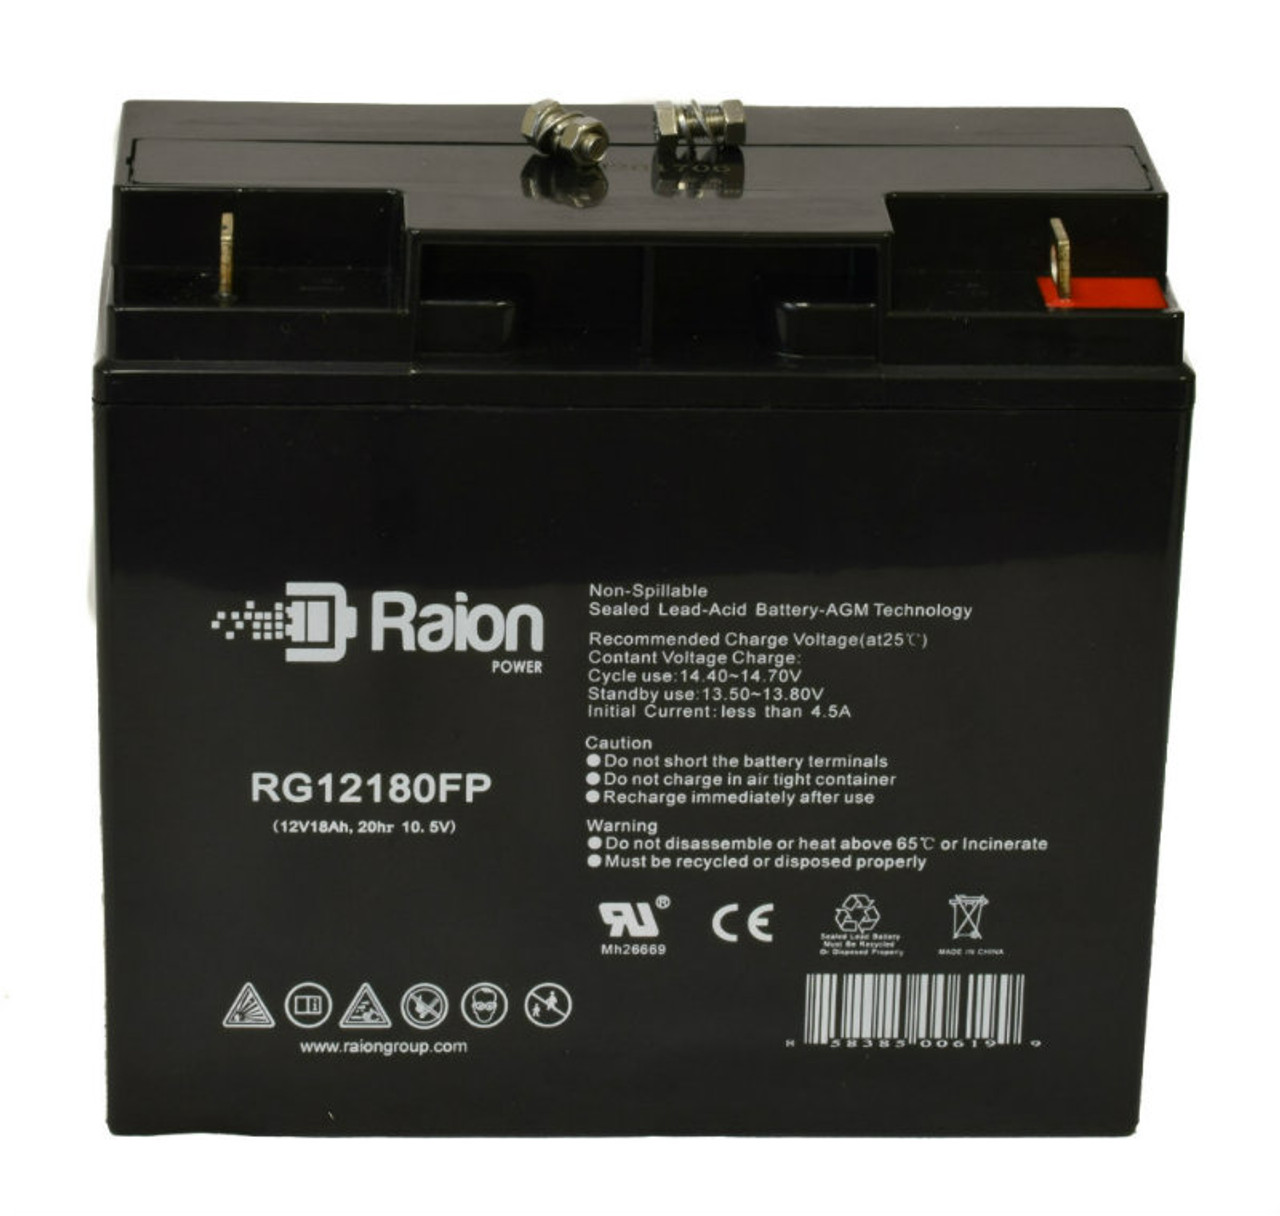 Raion Power 12V 18Ah AGM Battery Data Sheet for Bruno Typhoon Mobility Scooter